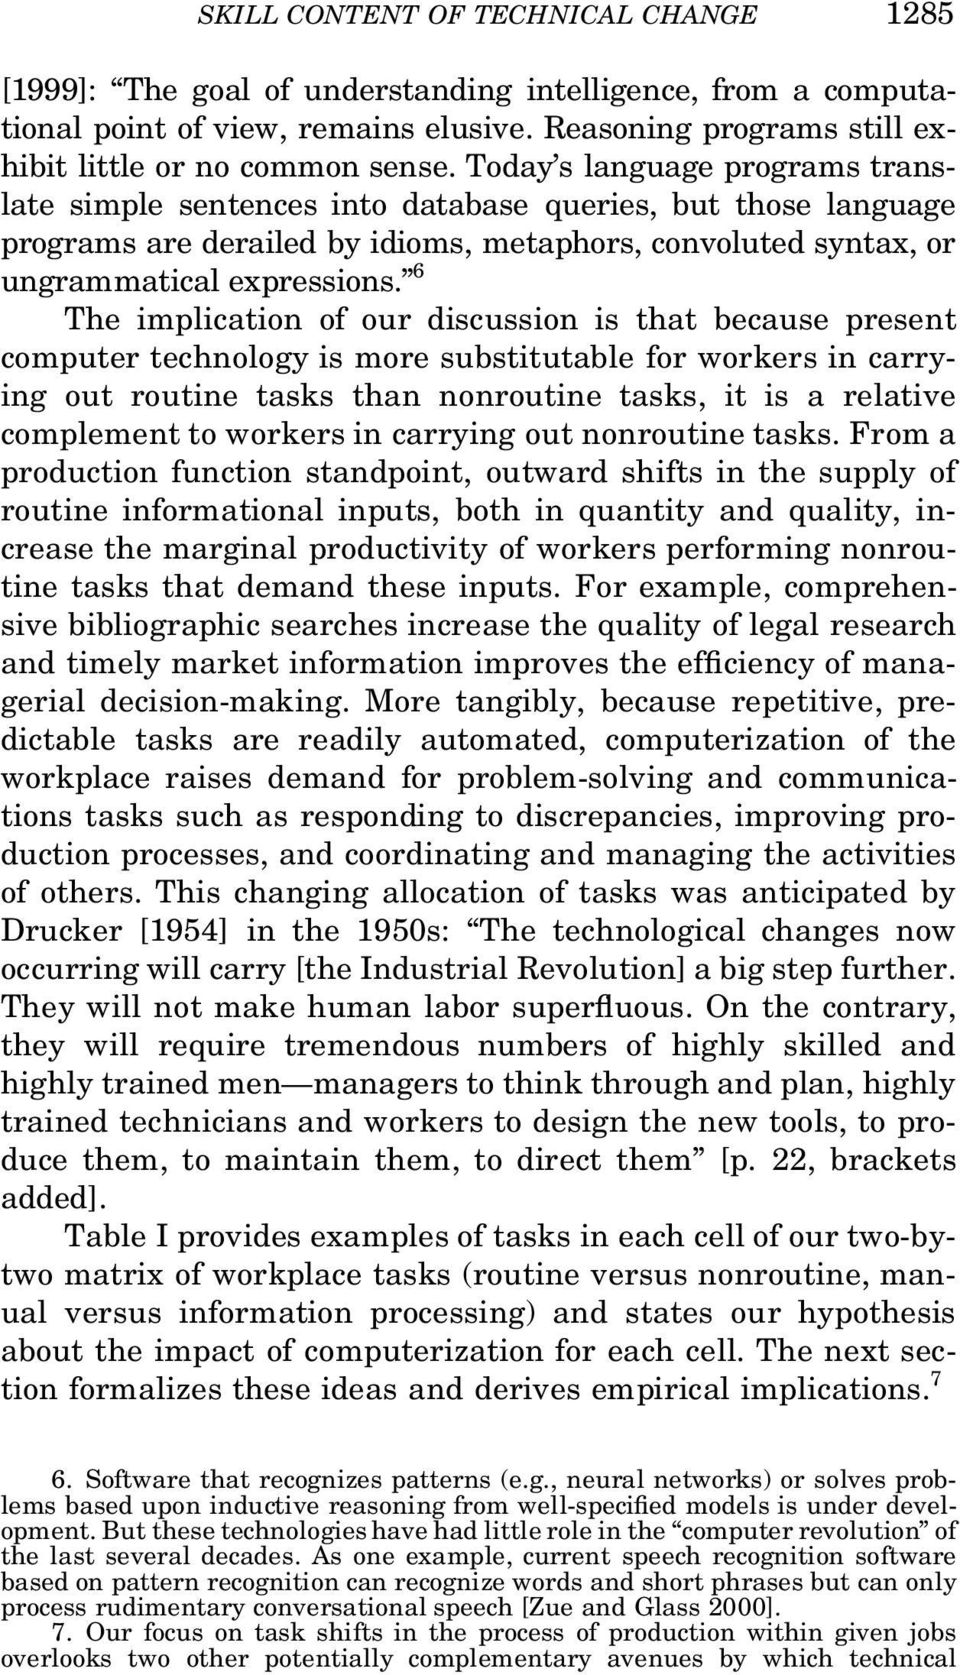 6 The implication of our discussion is that because present computer technology is more substitutable for workers in carrying out routine tasks than nonroutine tasks, it is a relative complement to